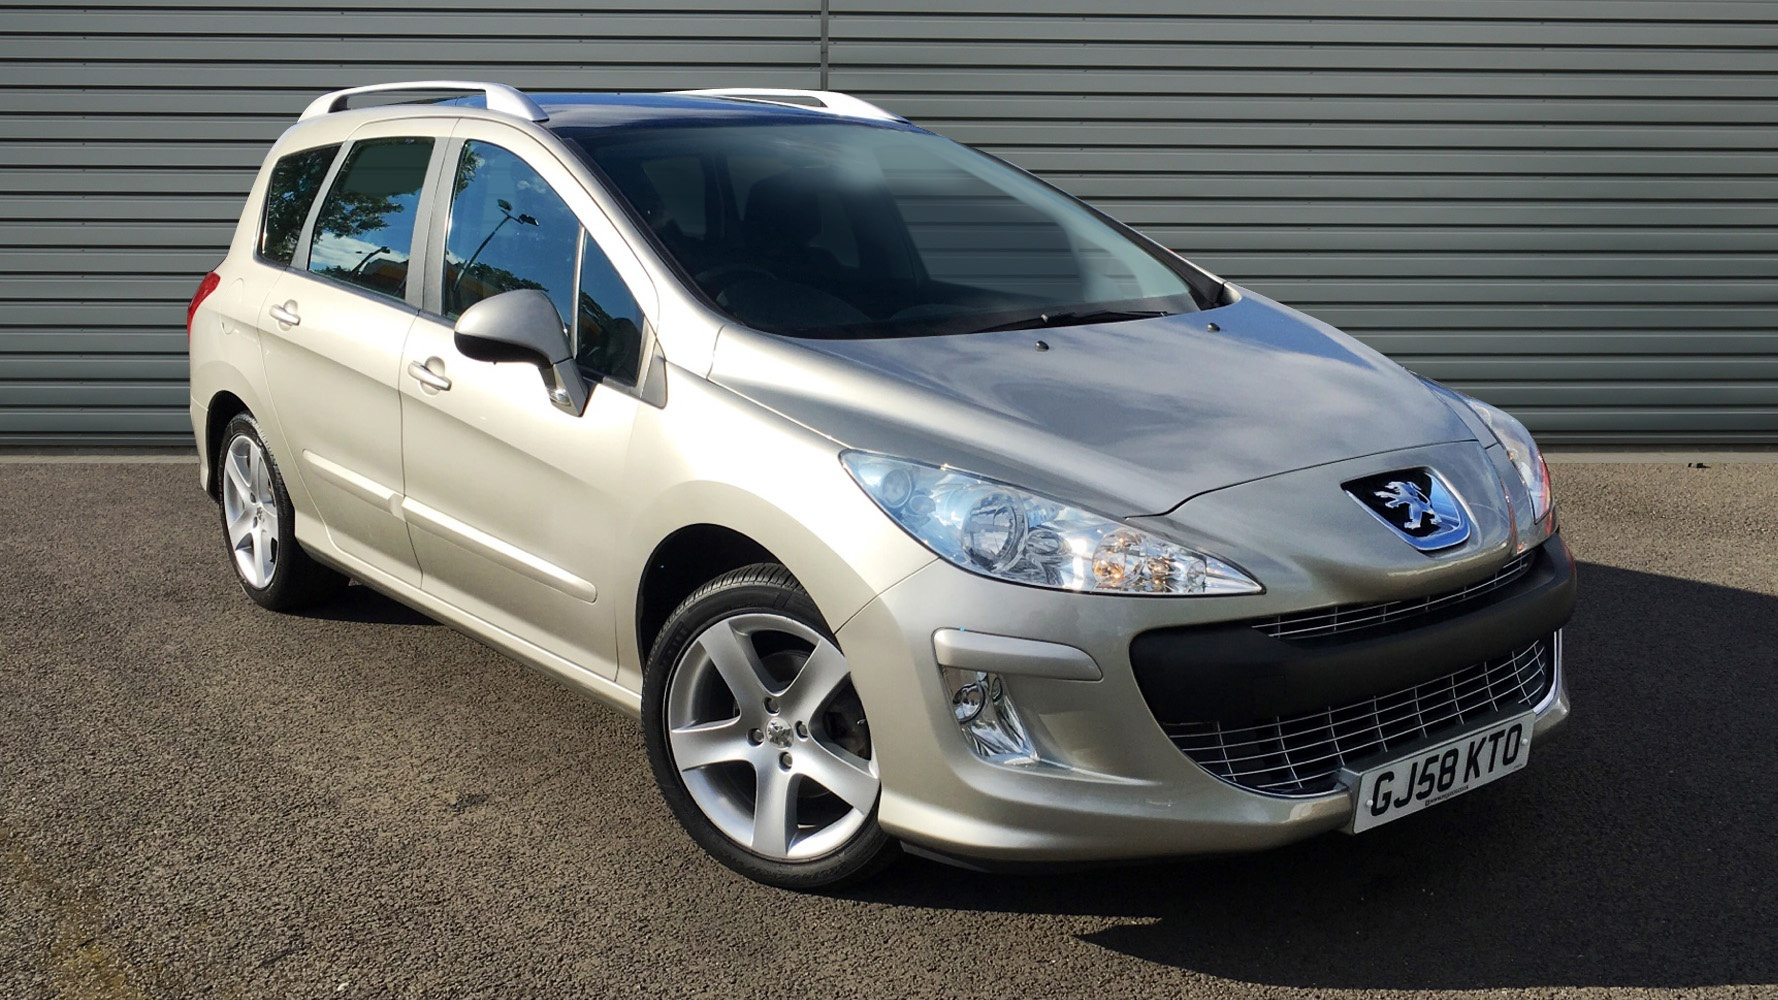 used peugeot 308 sw estate 1 6 hdi fap sport 5dr 2008 gj58kto. Black Bedroom Furniture Sets. Home Design Ideas